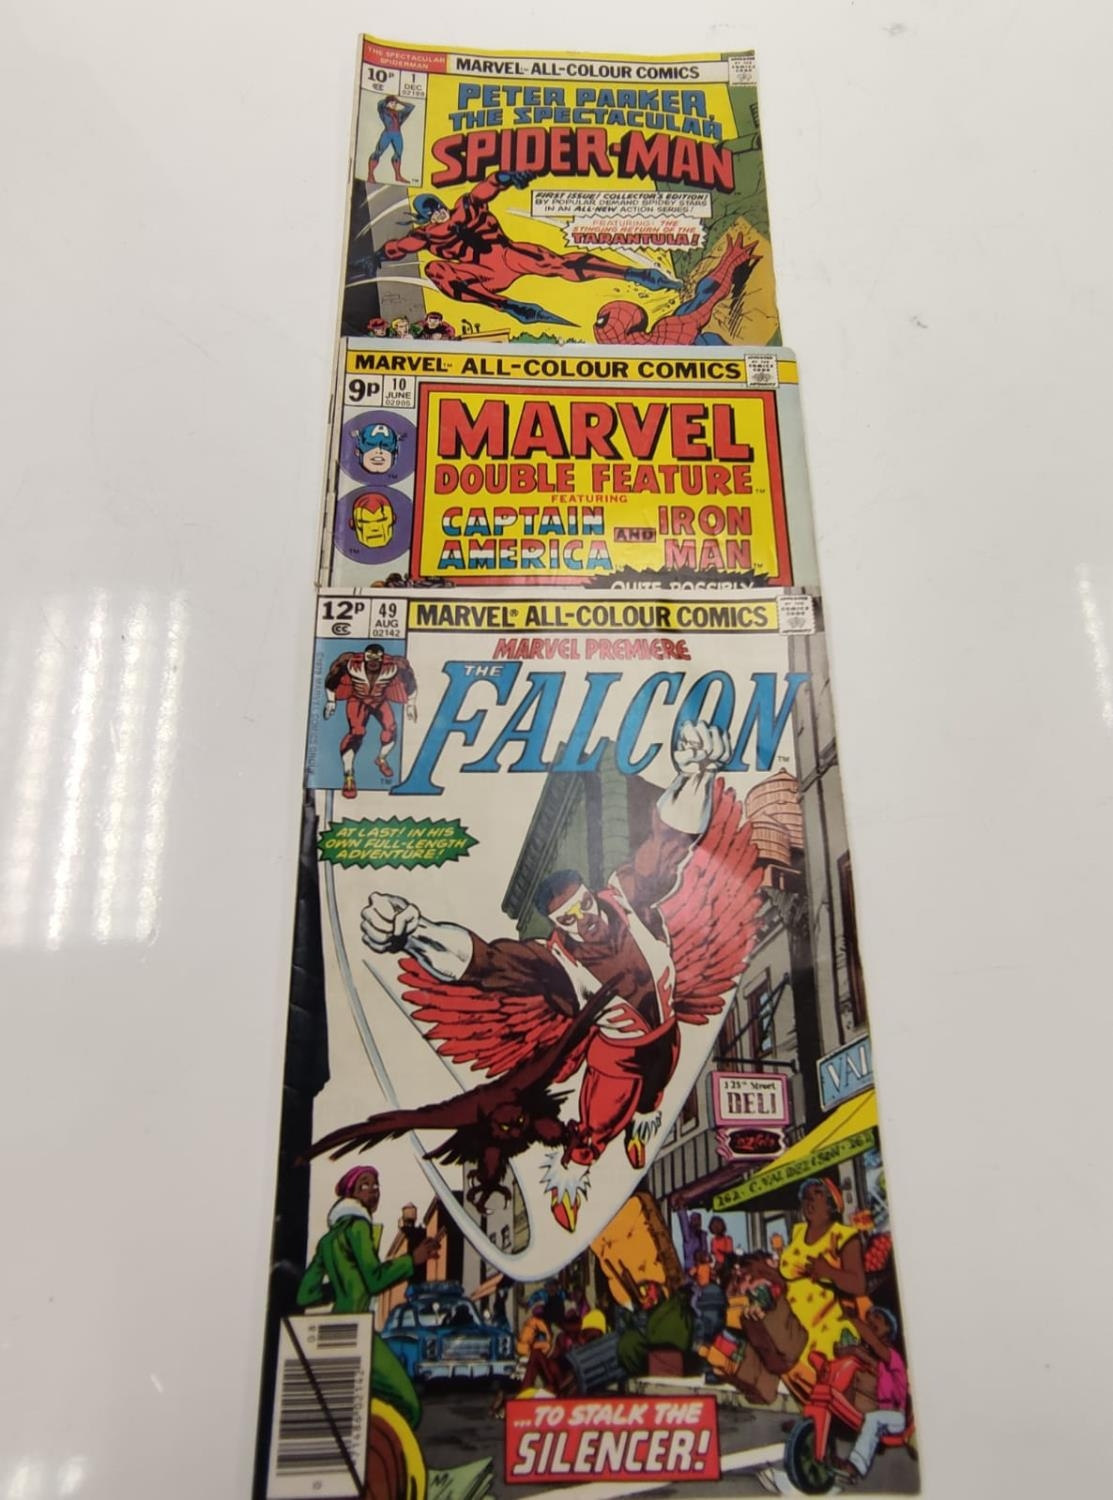 3 Eclectic Vintage Marvel Comics, including the rare 'Peter Parker, The Spectacular Spider-Man'. - Image 5 of 8